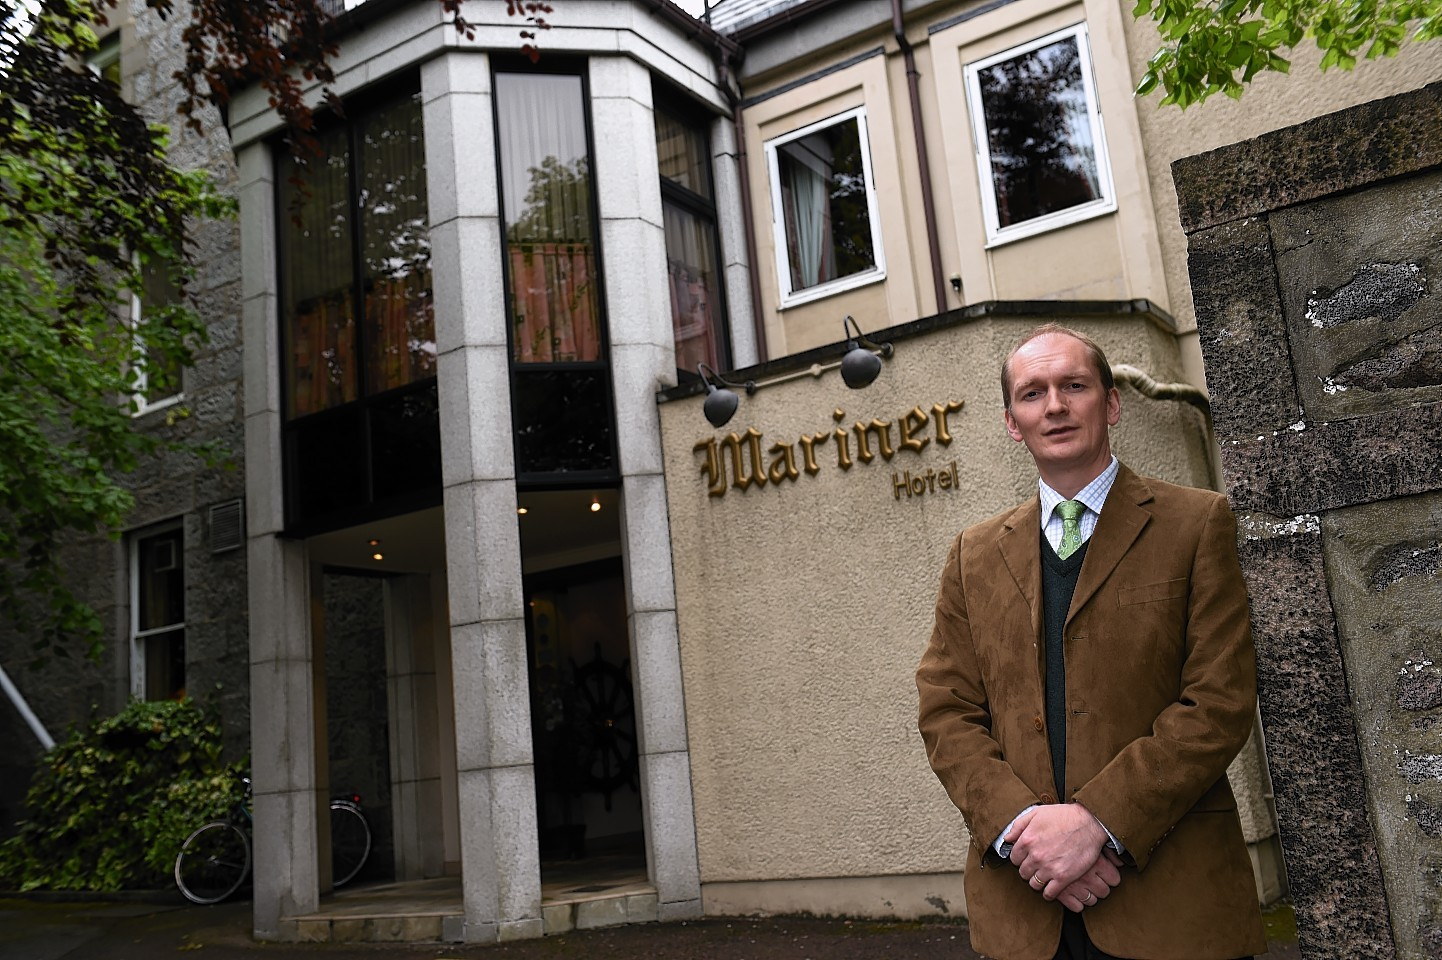 The Mariner Hotel owner Mike Edwards